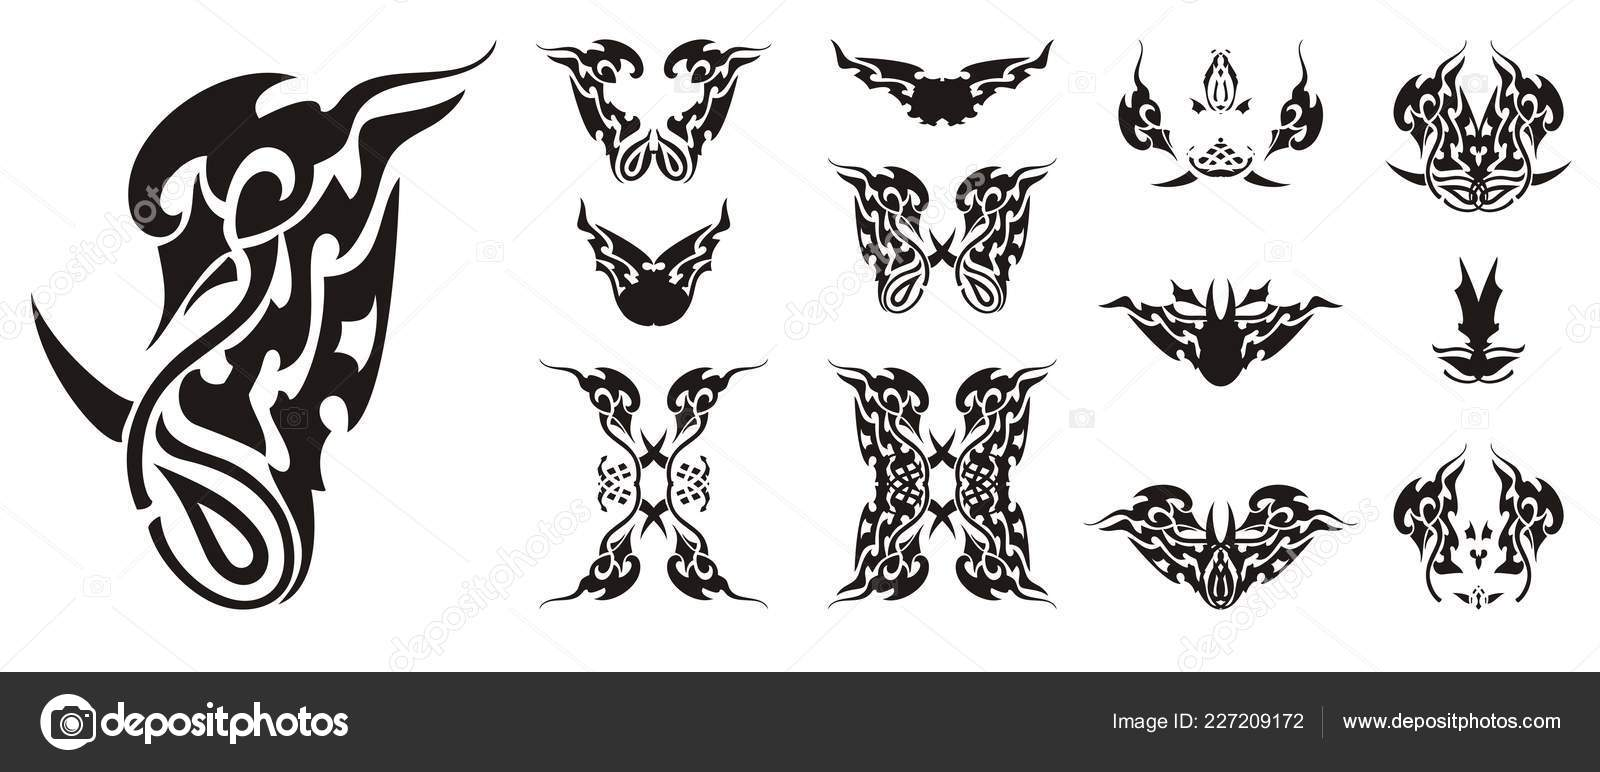 56150c450 Ornate Flaming Bird Symbol Butterflies Wings Abstract Twirled Tribal  Butterfly — Stock Vector